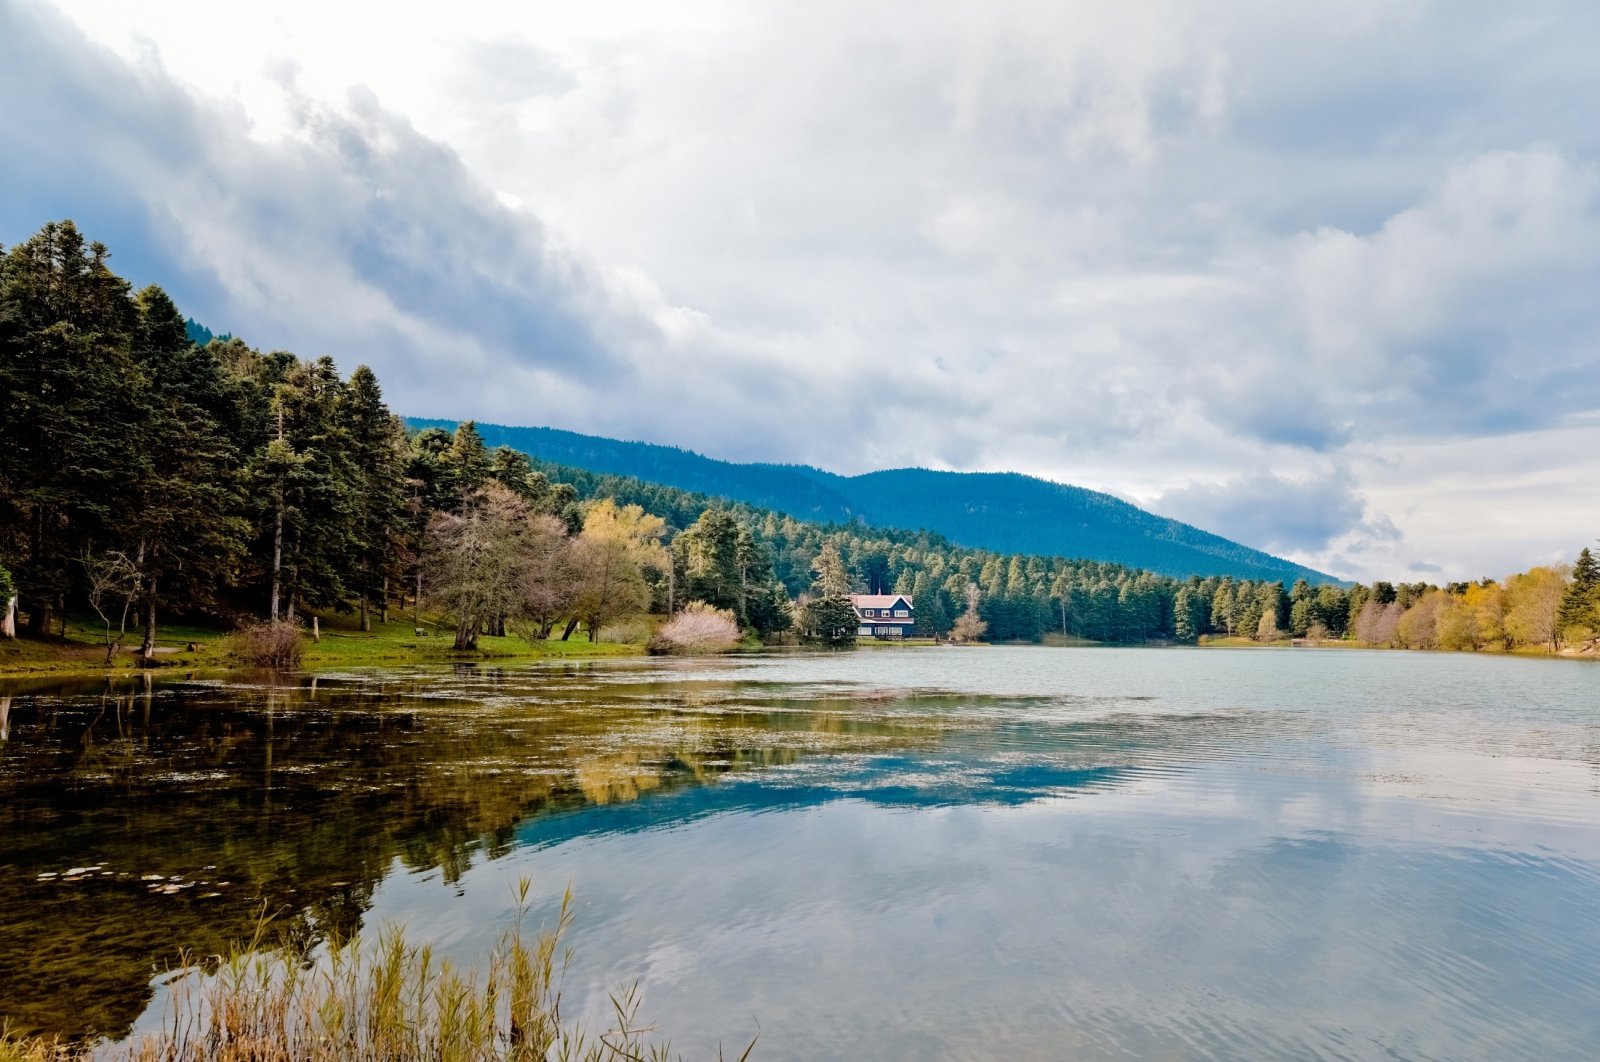 A view of Lake Abant with the surrounding mountains and forests in the background, Bolu, Turkey, Dec. 20, 2016. (iStock Photo)